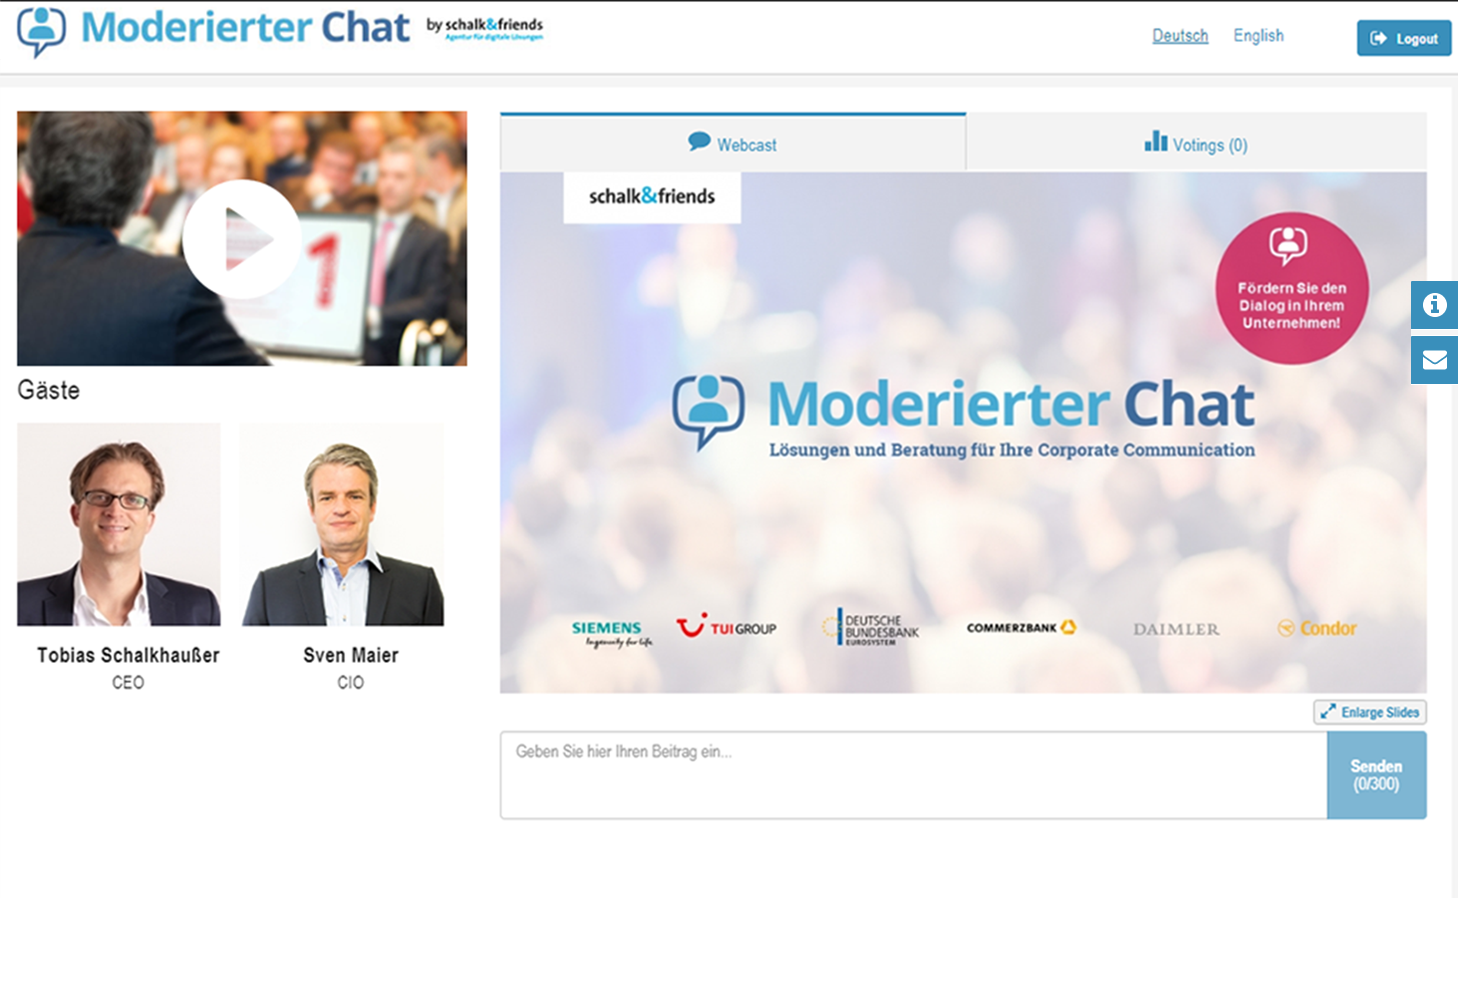 Moderierter Chat Pre-Chat Town Hall Meeting Livestream und PPT